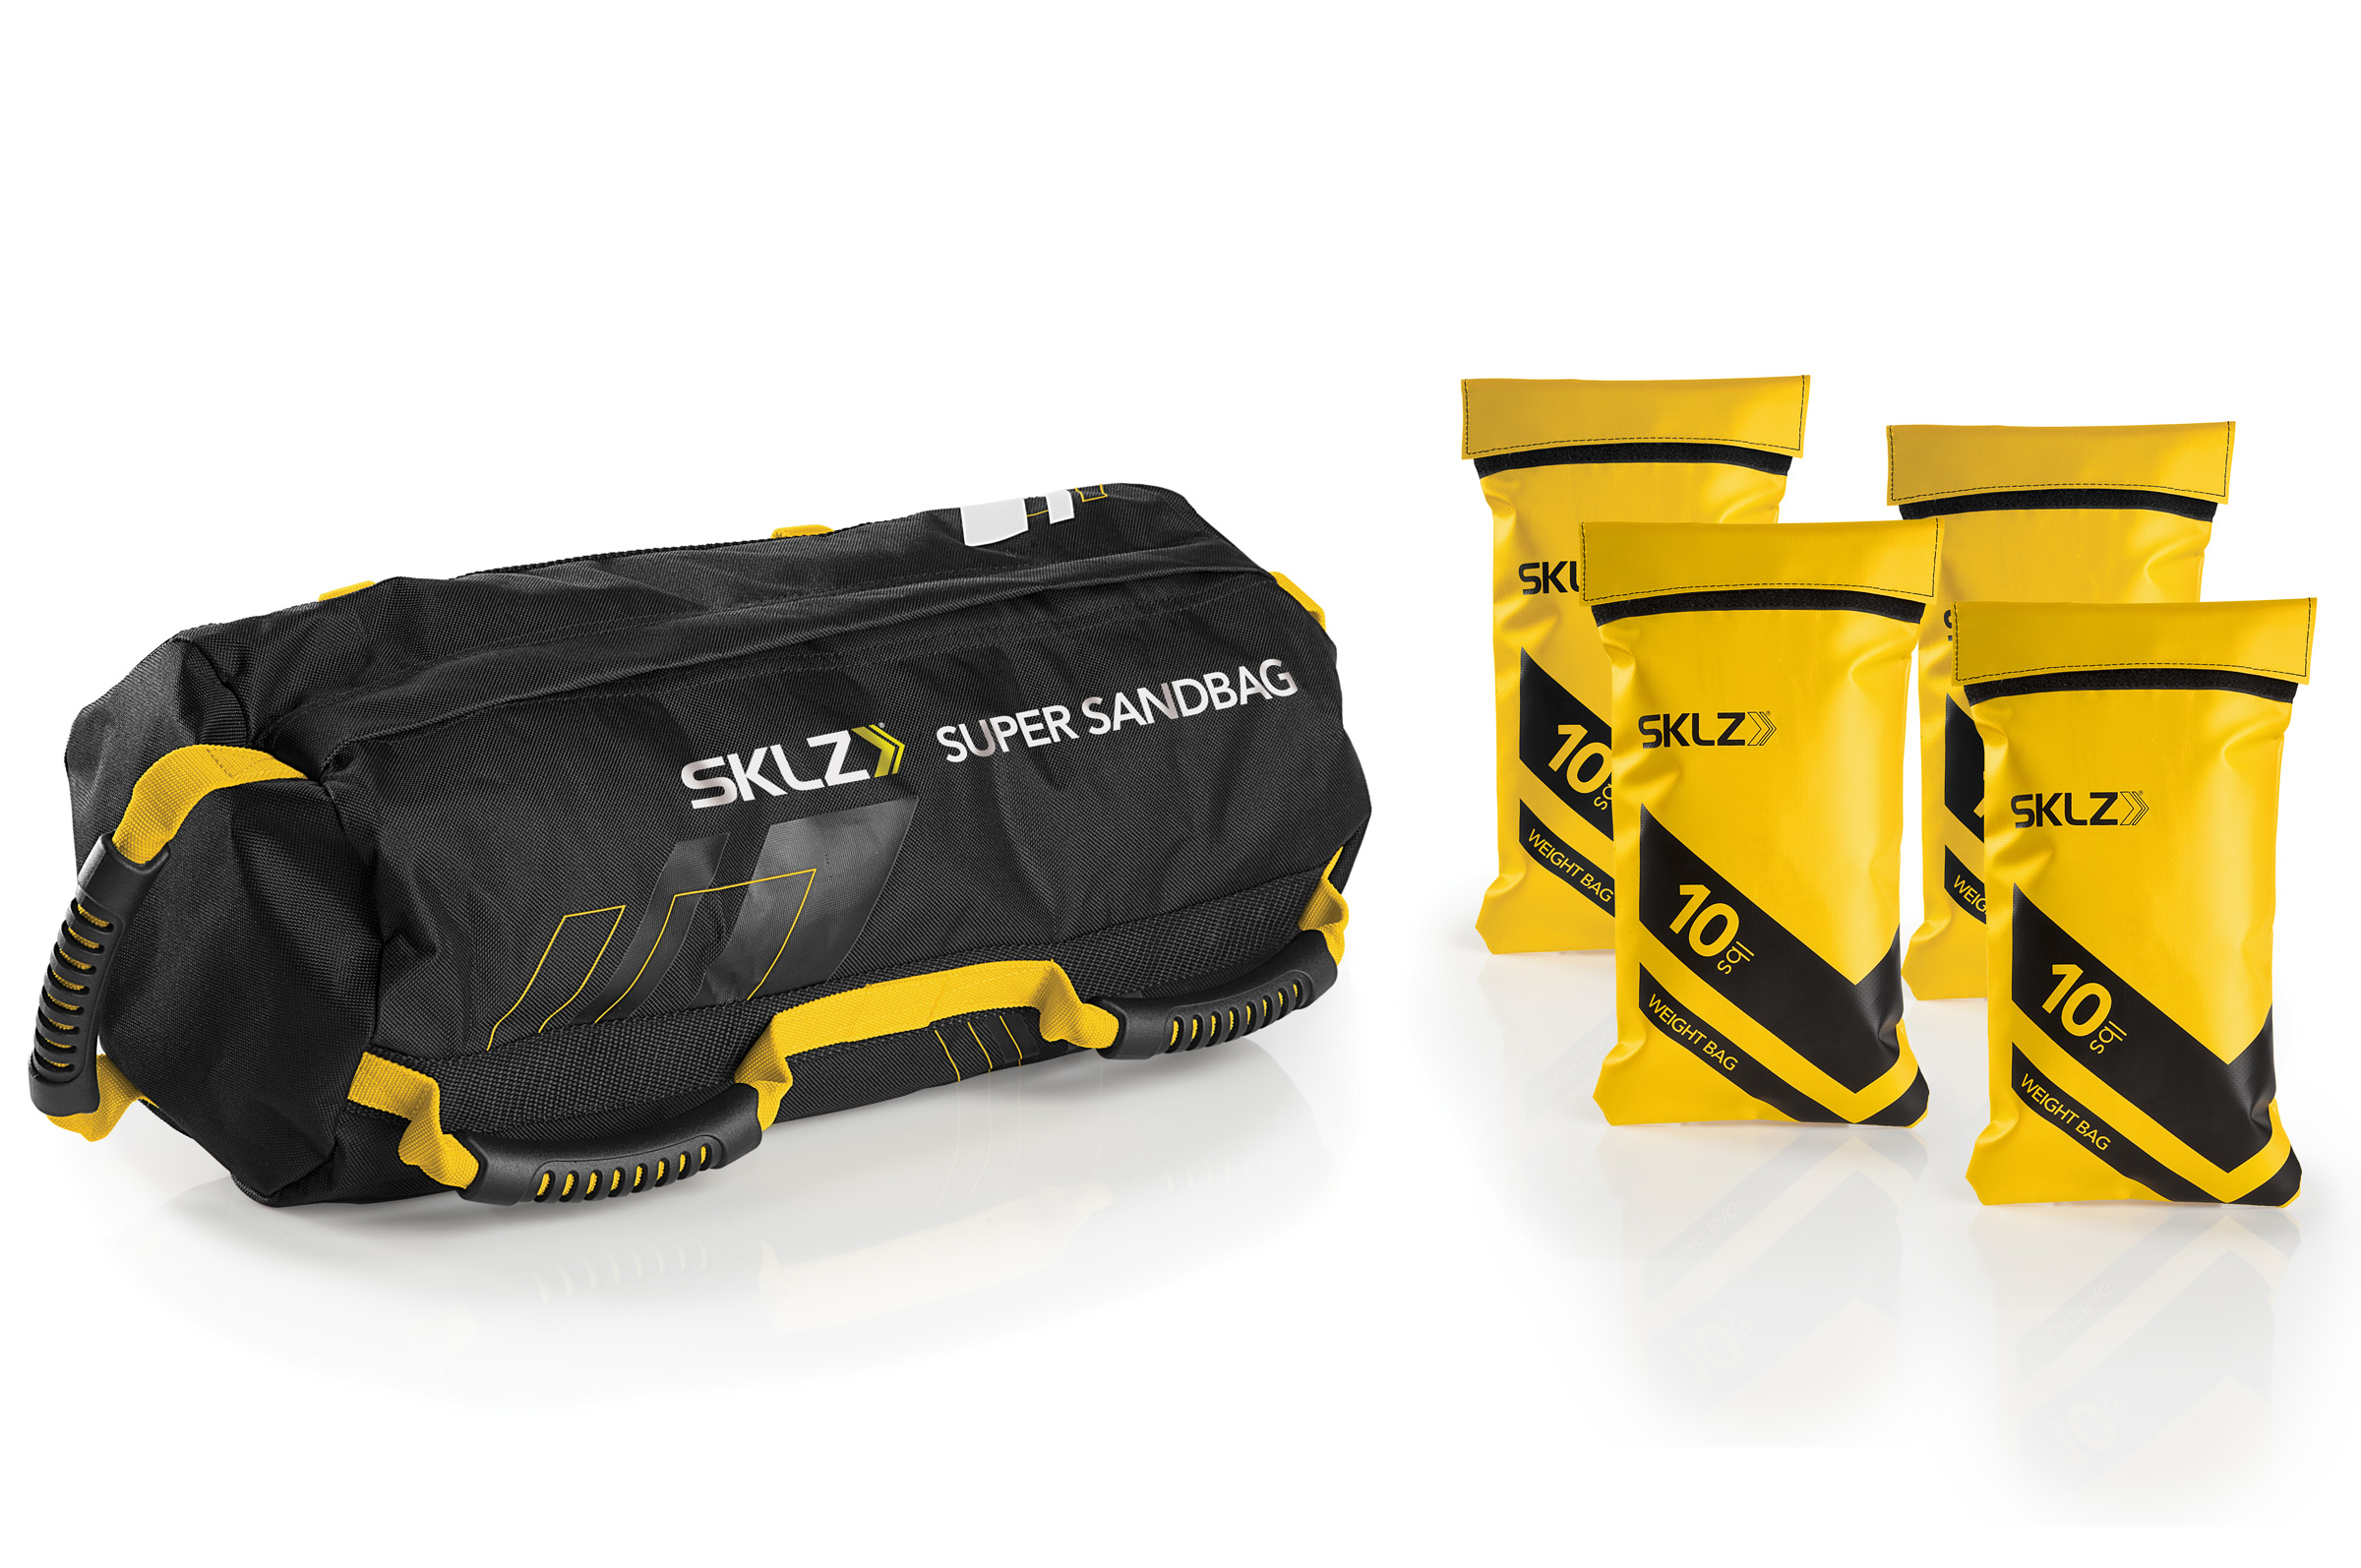 Super Sandbag, SKLZ